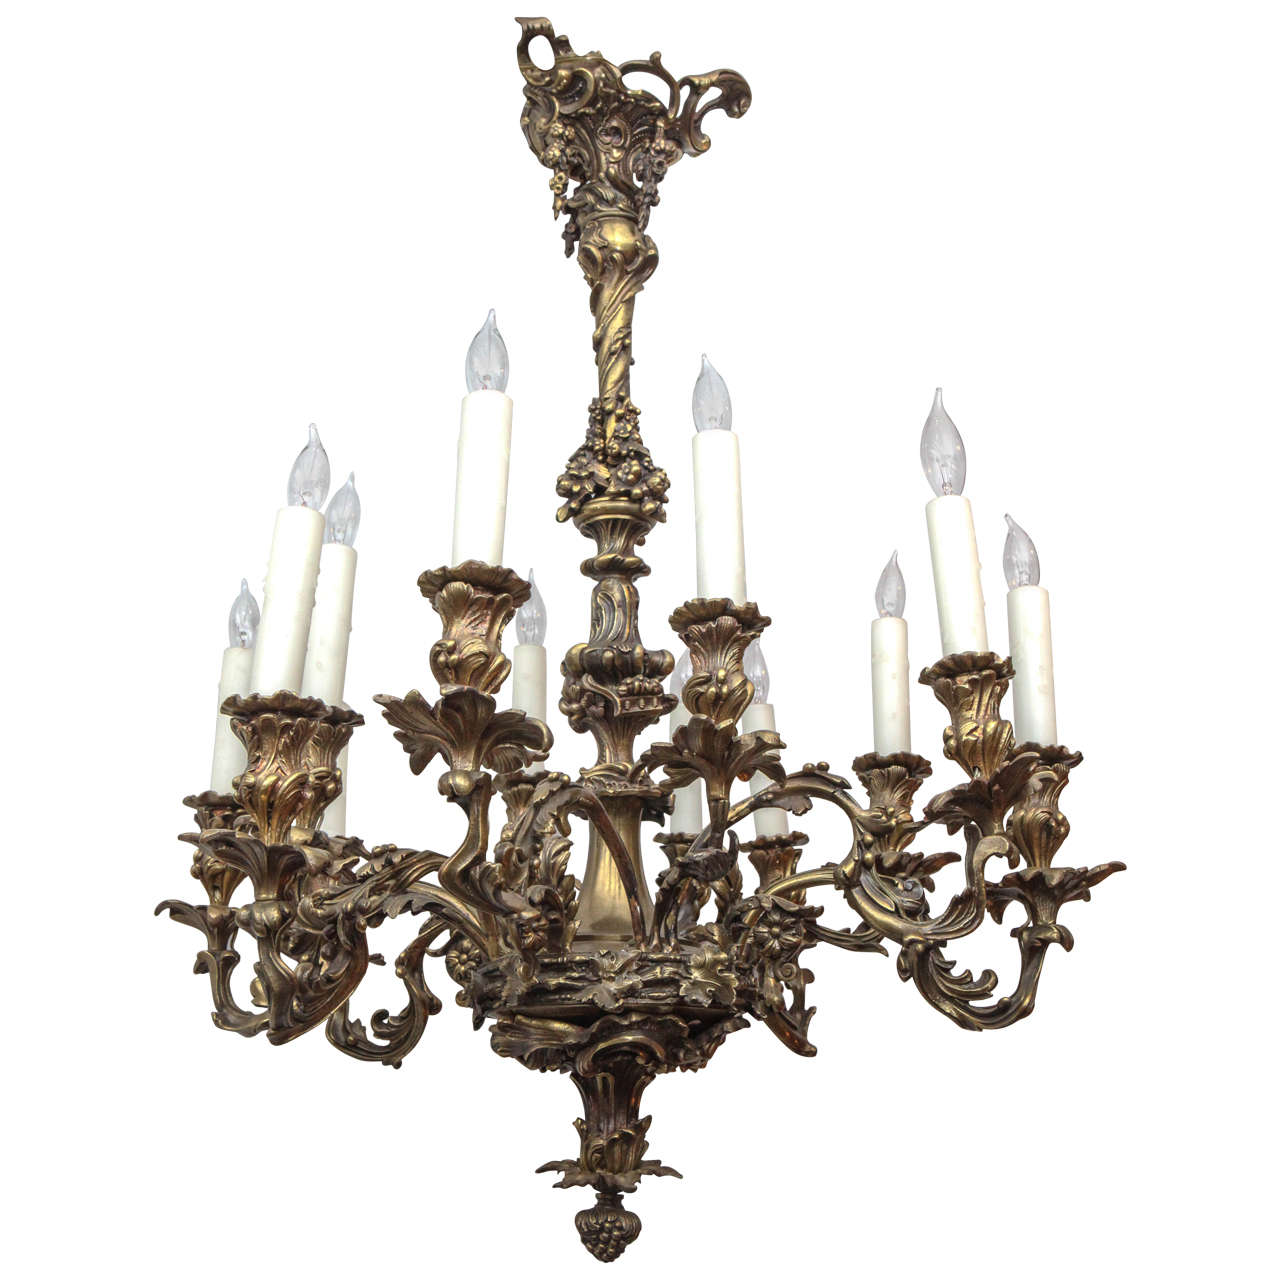 French Bronze Chandelier with Oak Leaf Motif For Sale  sc 1 st  1stDibs & 19th c. French Bronze Chandelier with Oak Leaf Motif For Sale at 1stdibs